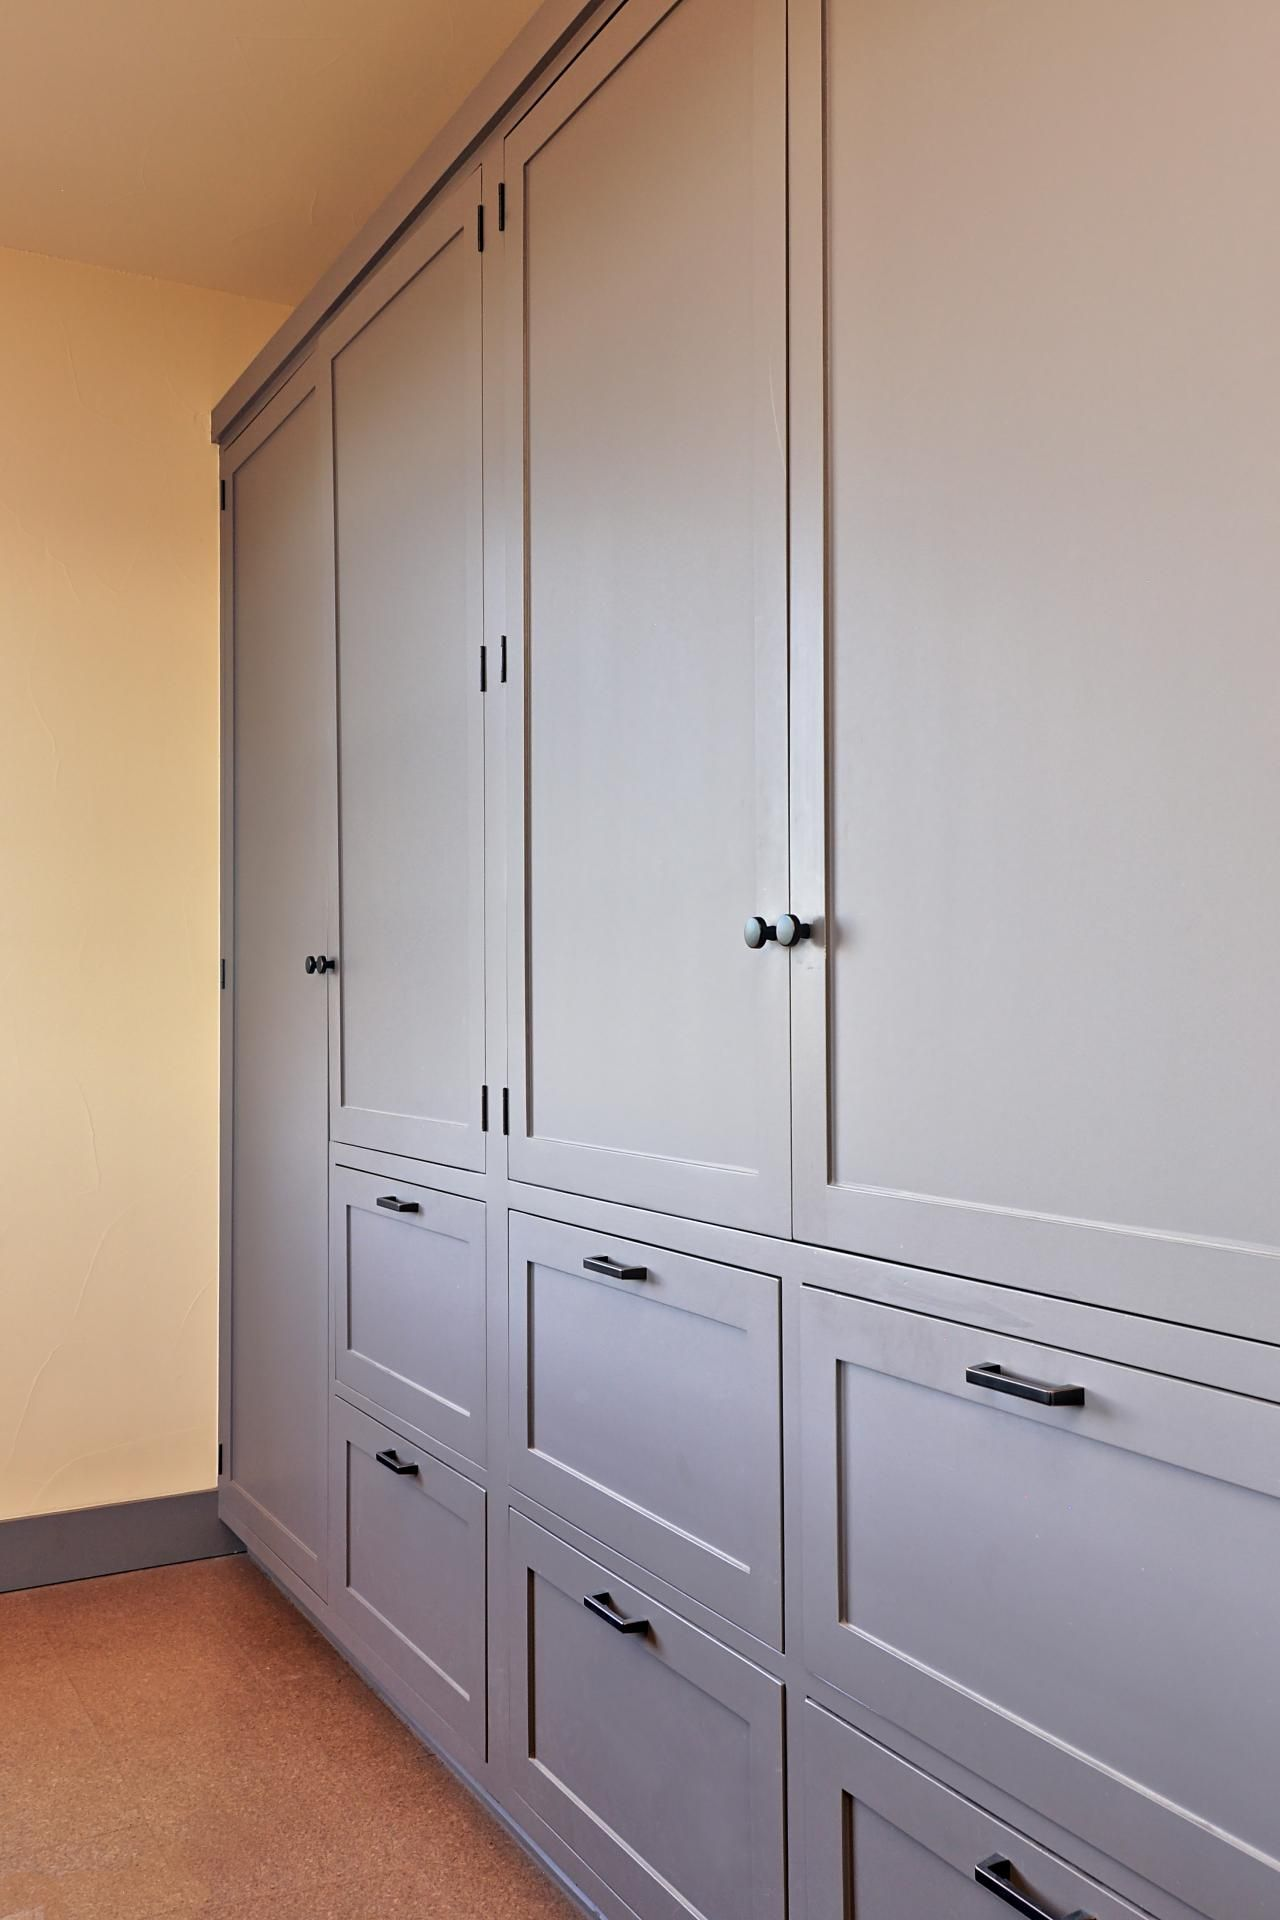 Built In Bedroom Storage Cabinets Hgtv Bedroom Ideas Pinterest Hgtv Bedroom Storage And